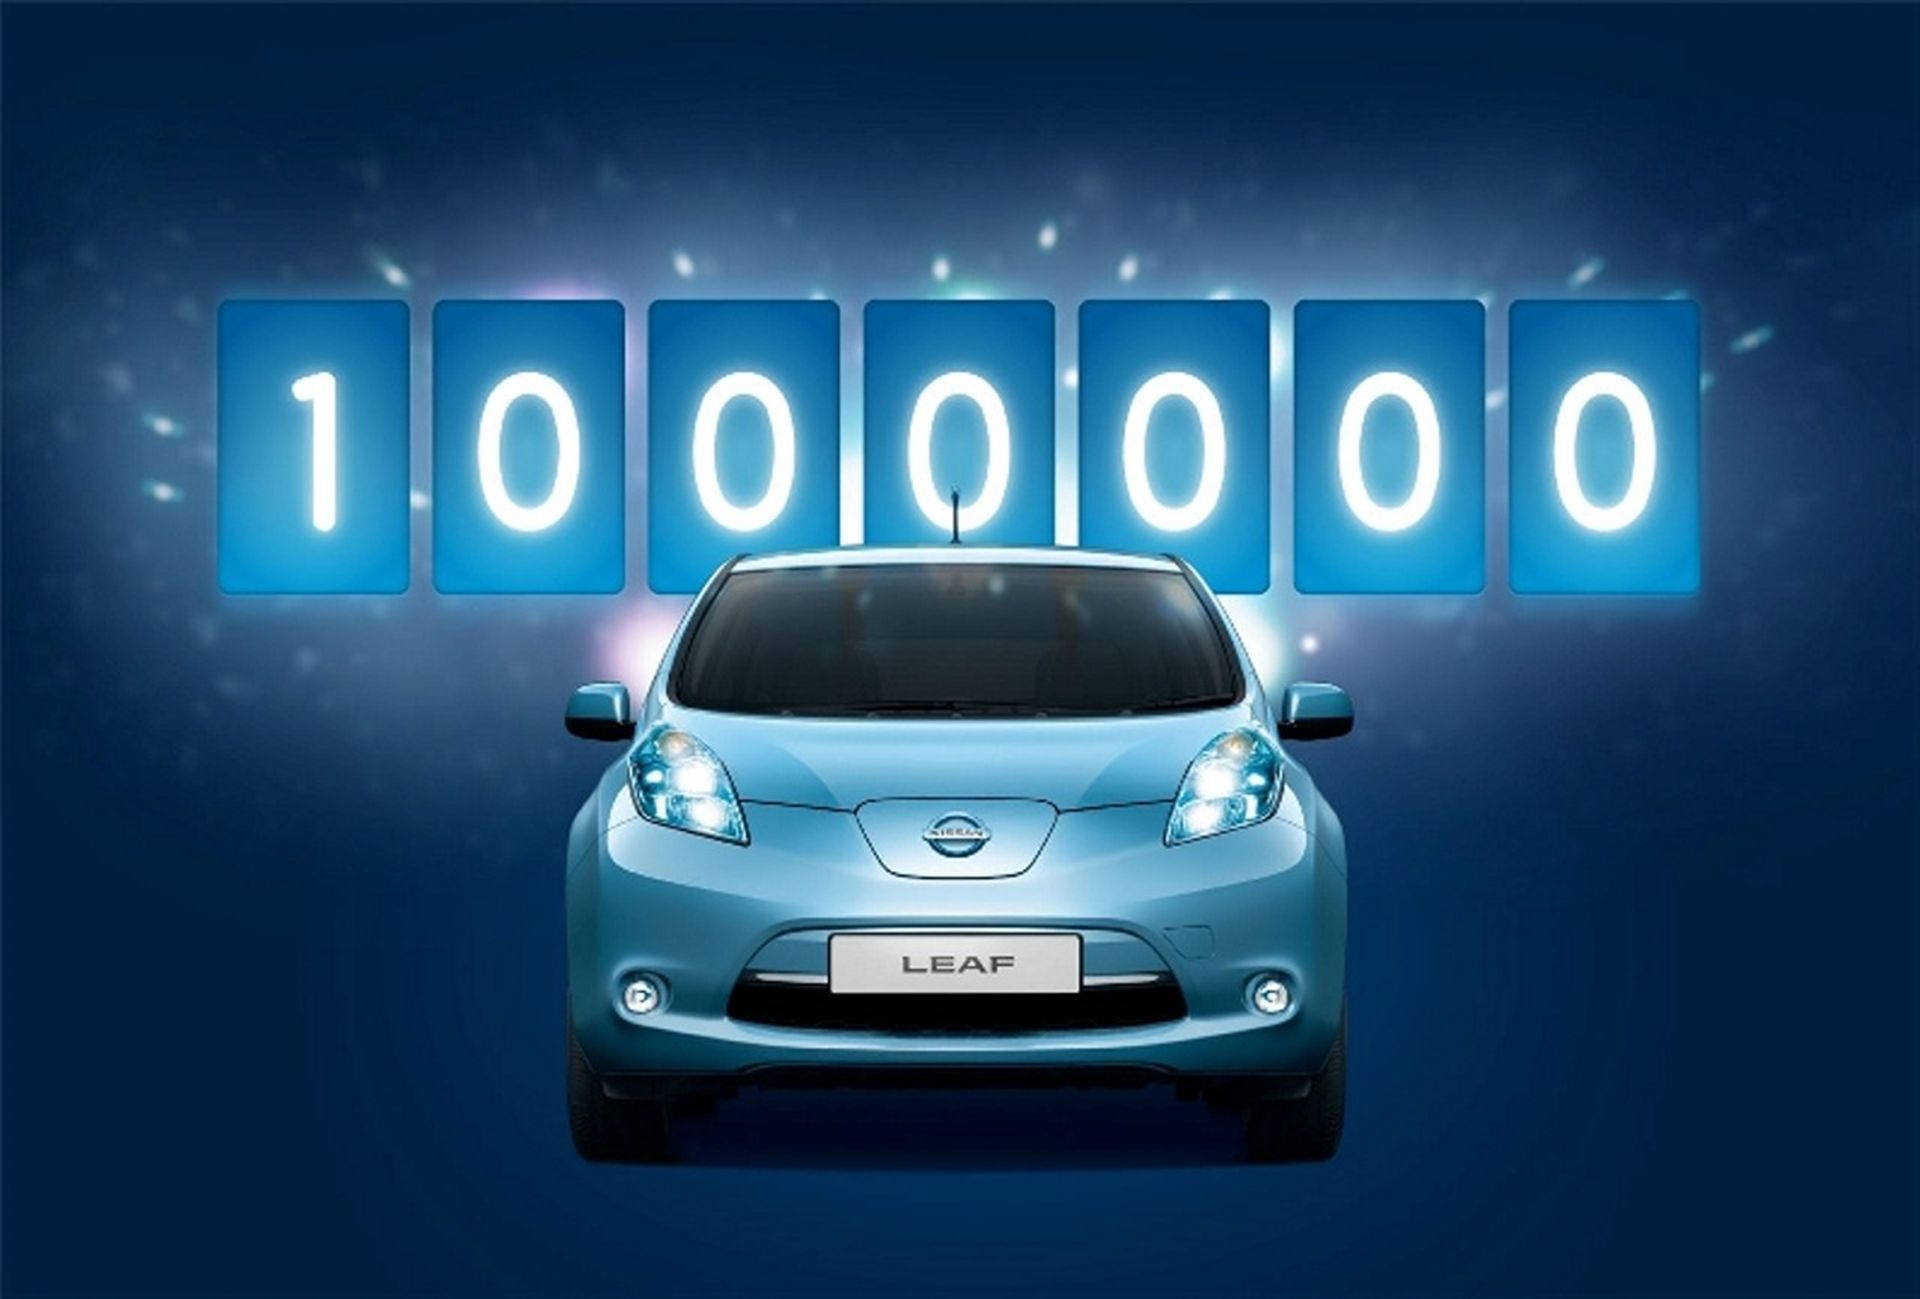 nissan one million